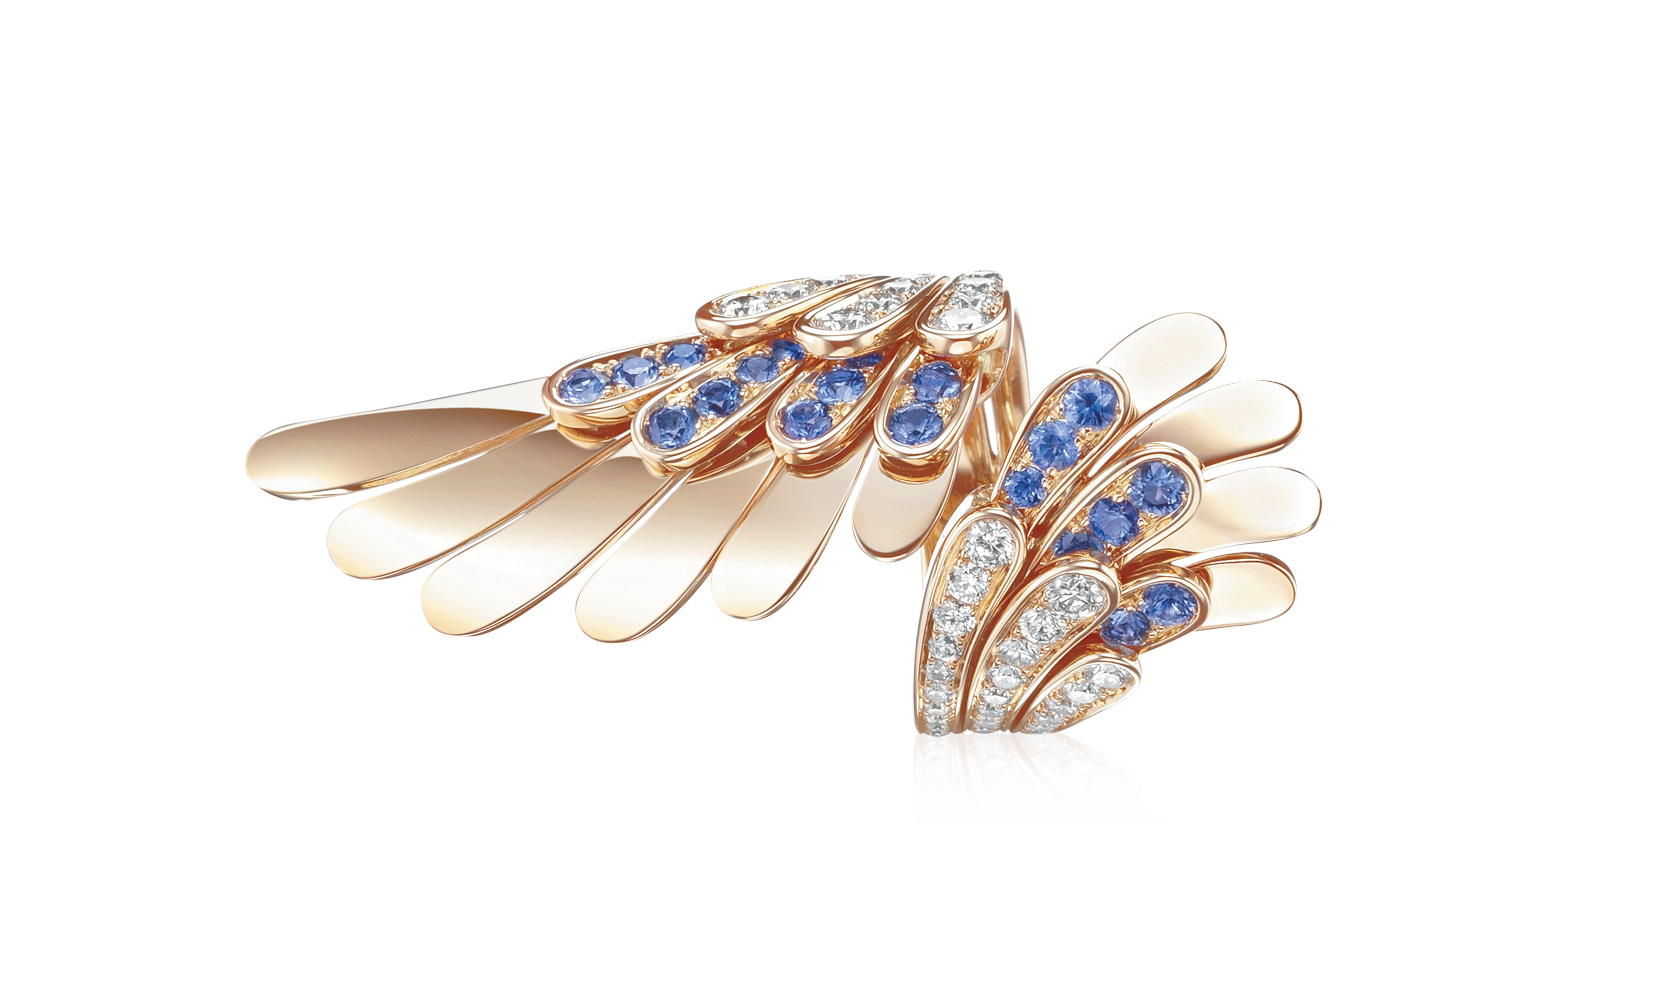 Gold Angel ring with diamonds and saphires - Angel - Tabbah Jewelry